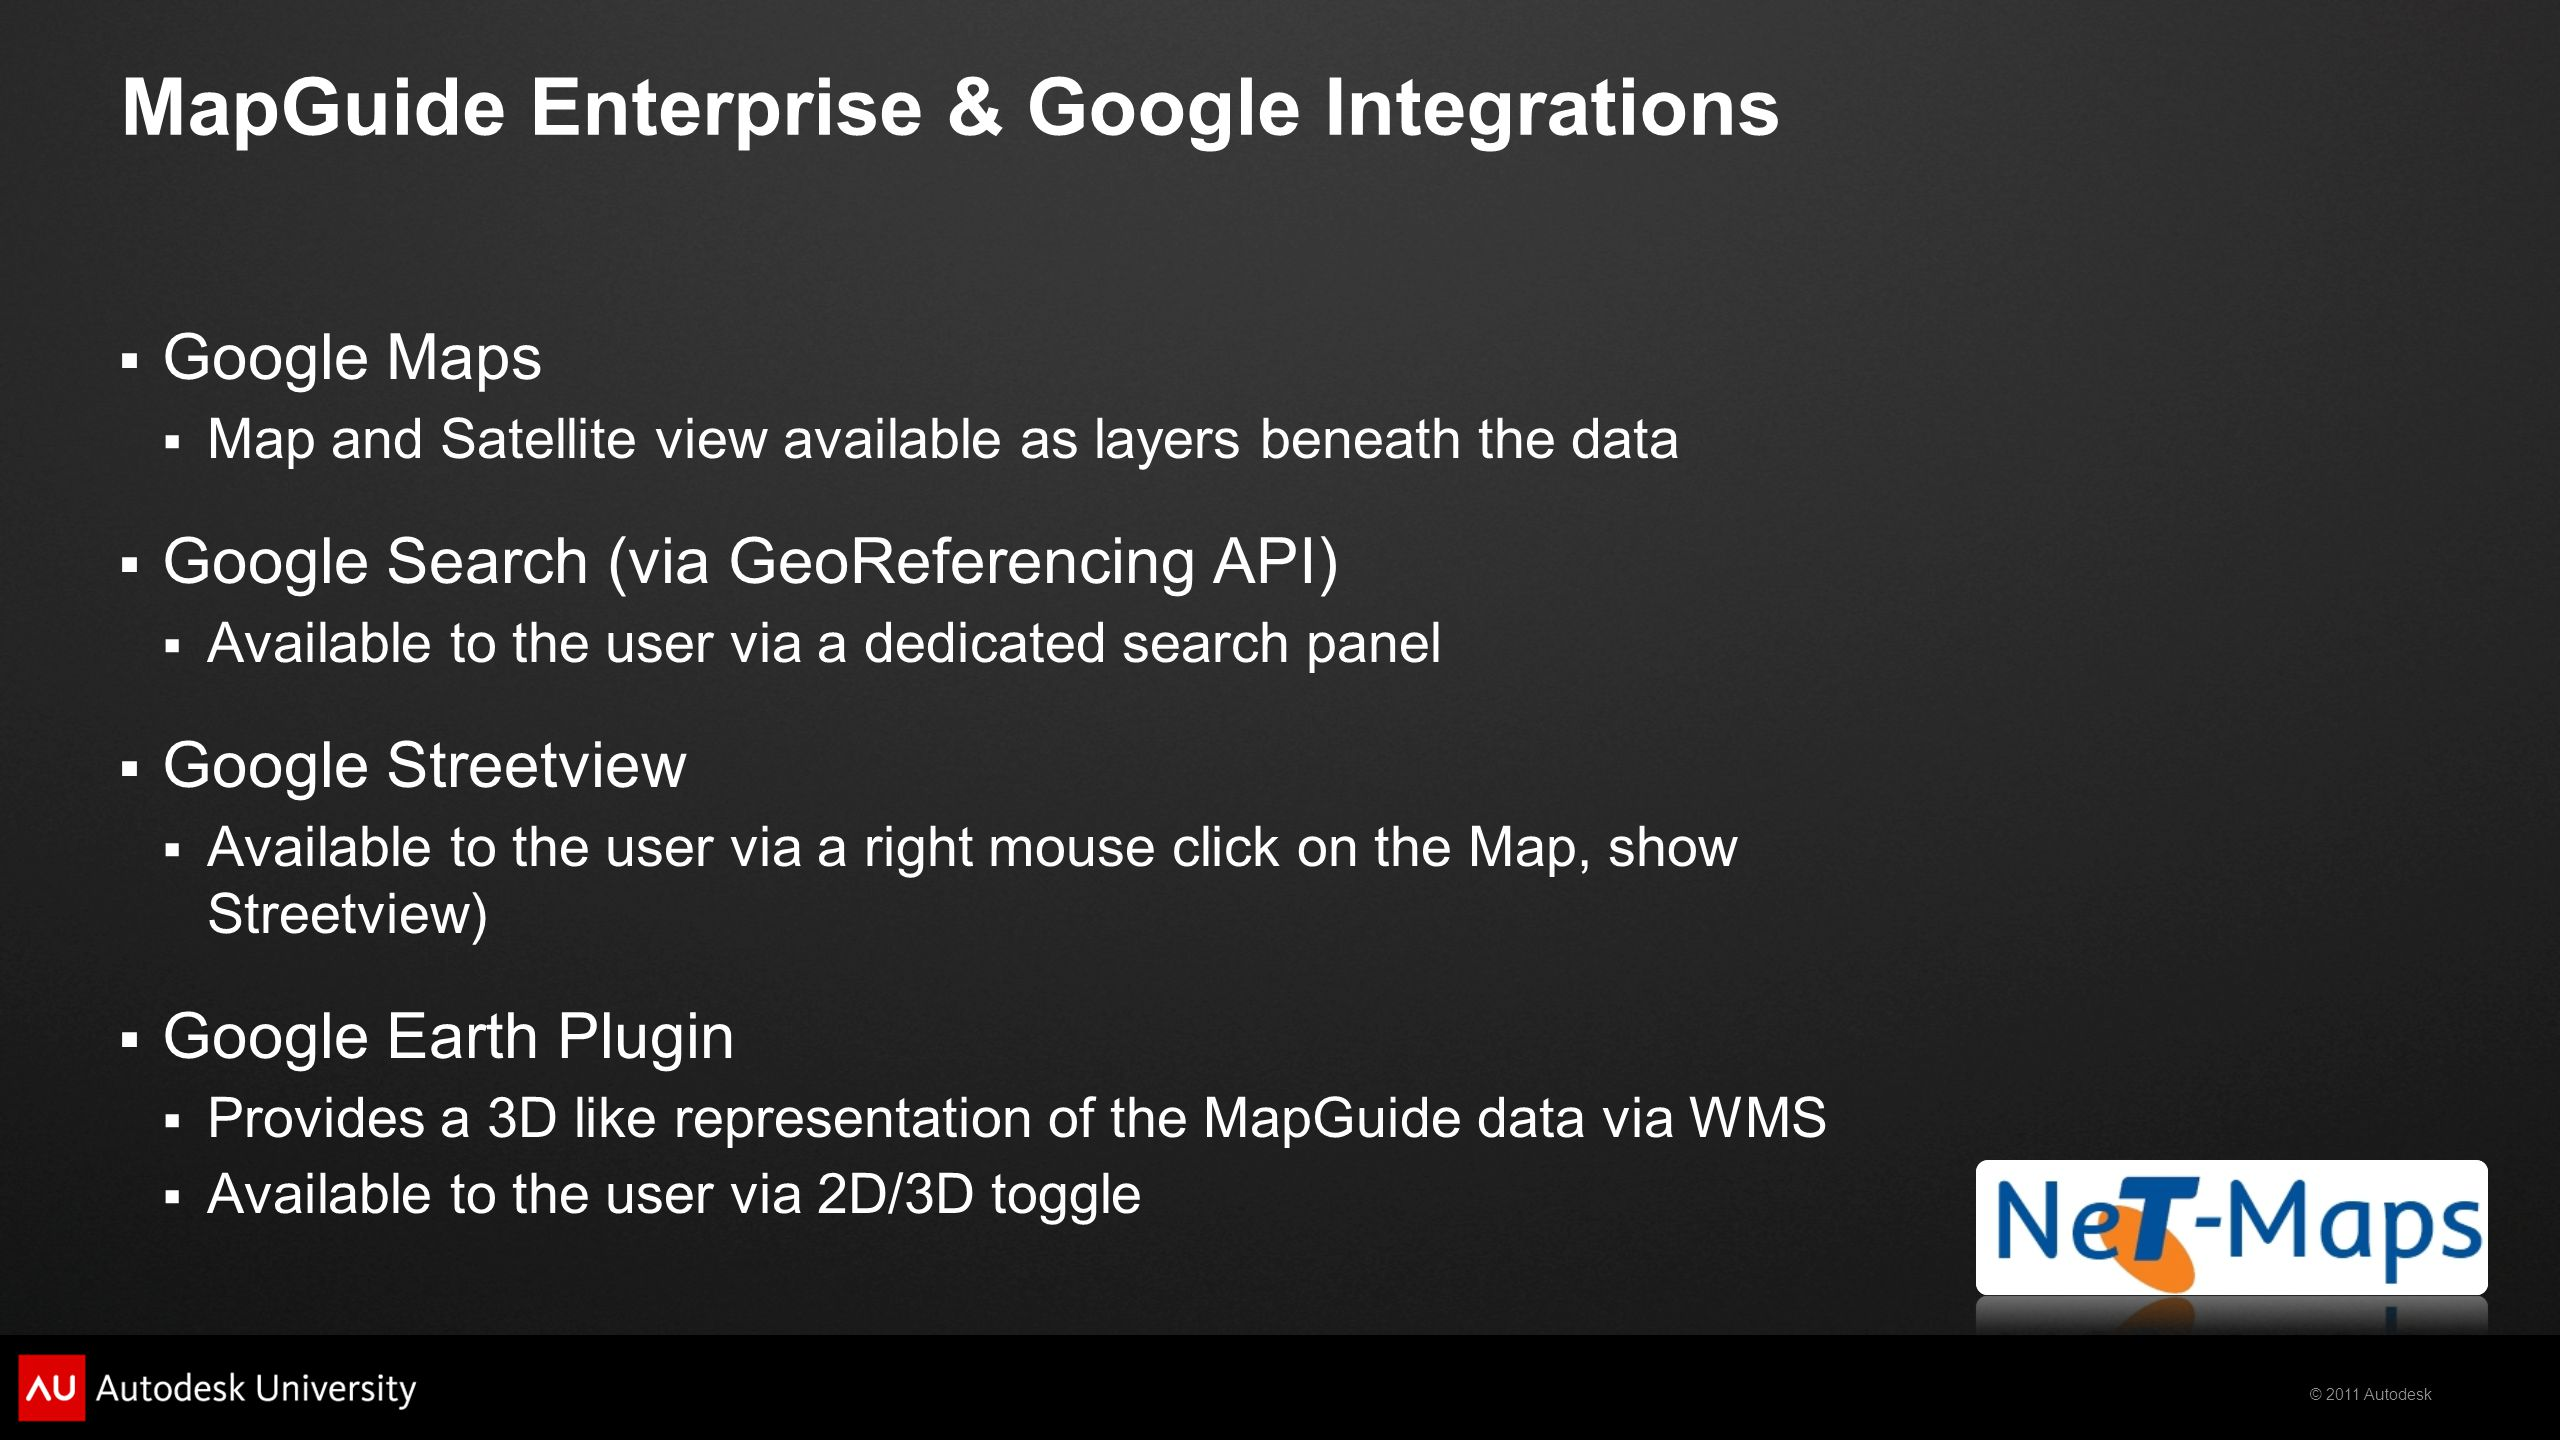 © 2011 Autodesk MapGuide Enterprise & Google Integrations  Google Maps  Map and Satellite view available as layers beneath the data  Google Search (via GeoReferencing API)  Available to the user via a dedicated search panel  Google Streetview  Available to the user via a right mouse click on the Map, show Streetview)  Google Earth Plugin  Provides a 3D like representation of the MapGuide data via WMS  Available to the user via 2D/3D toggle